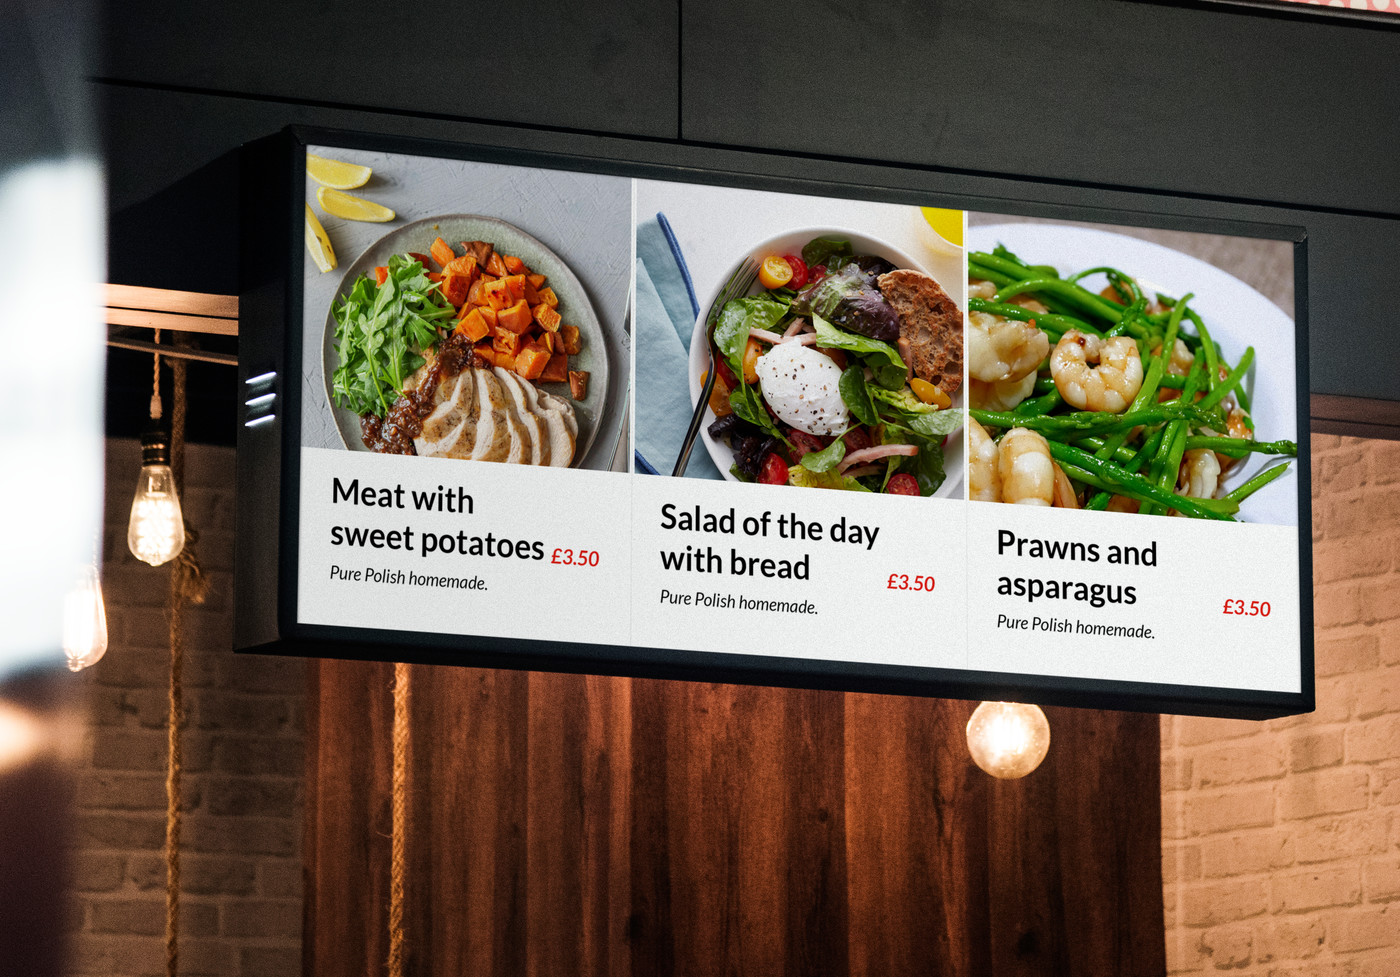 7 Ways Restaurants Can Use Digital Signage To Be More Awesome